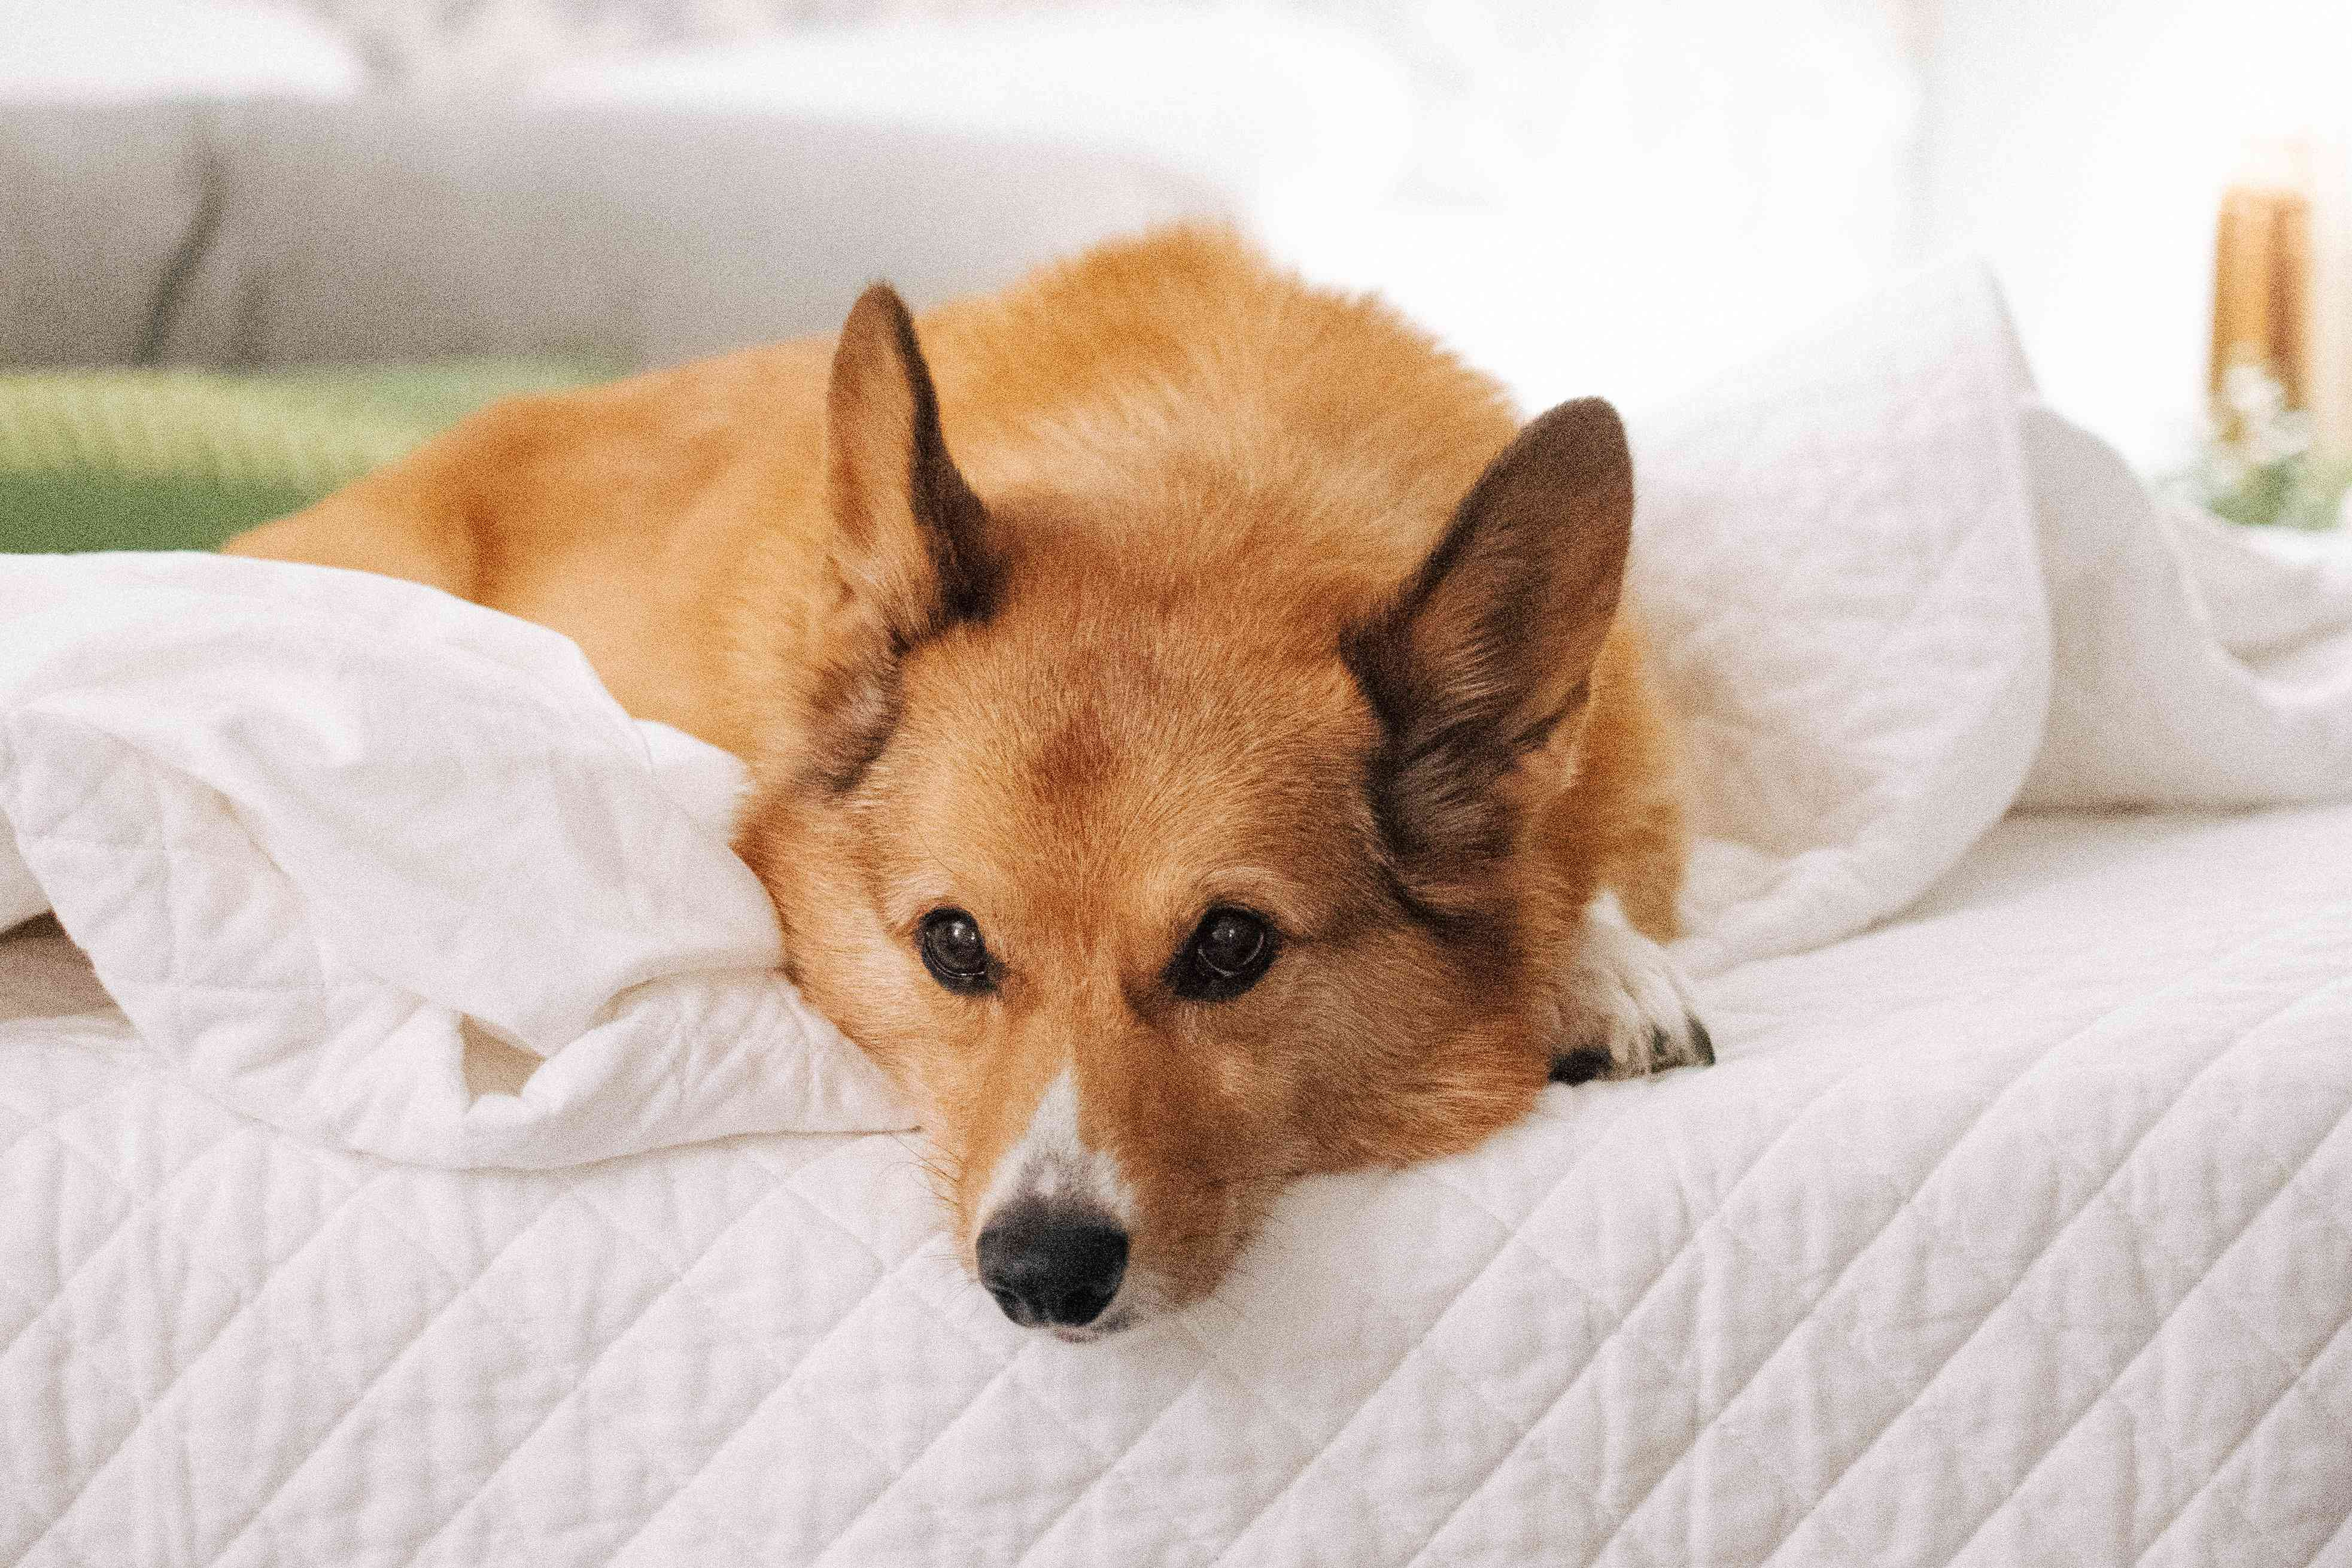 pet dog on a bed